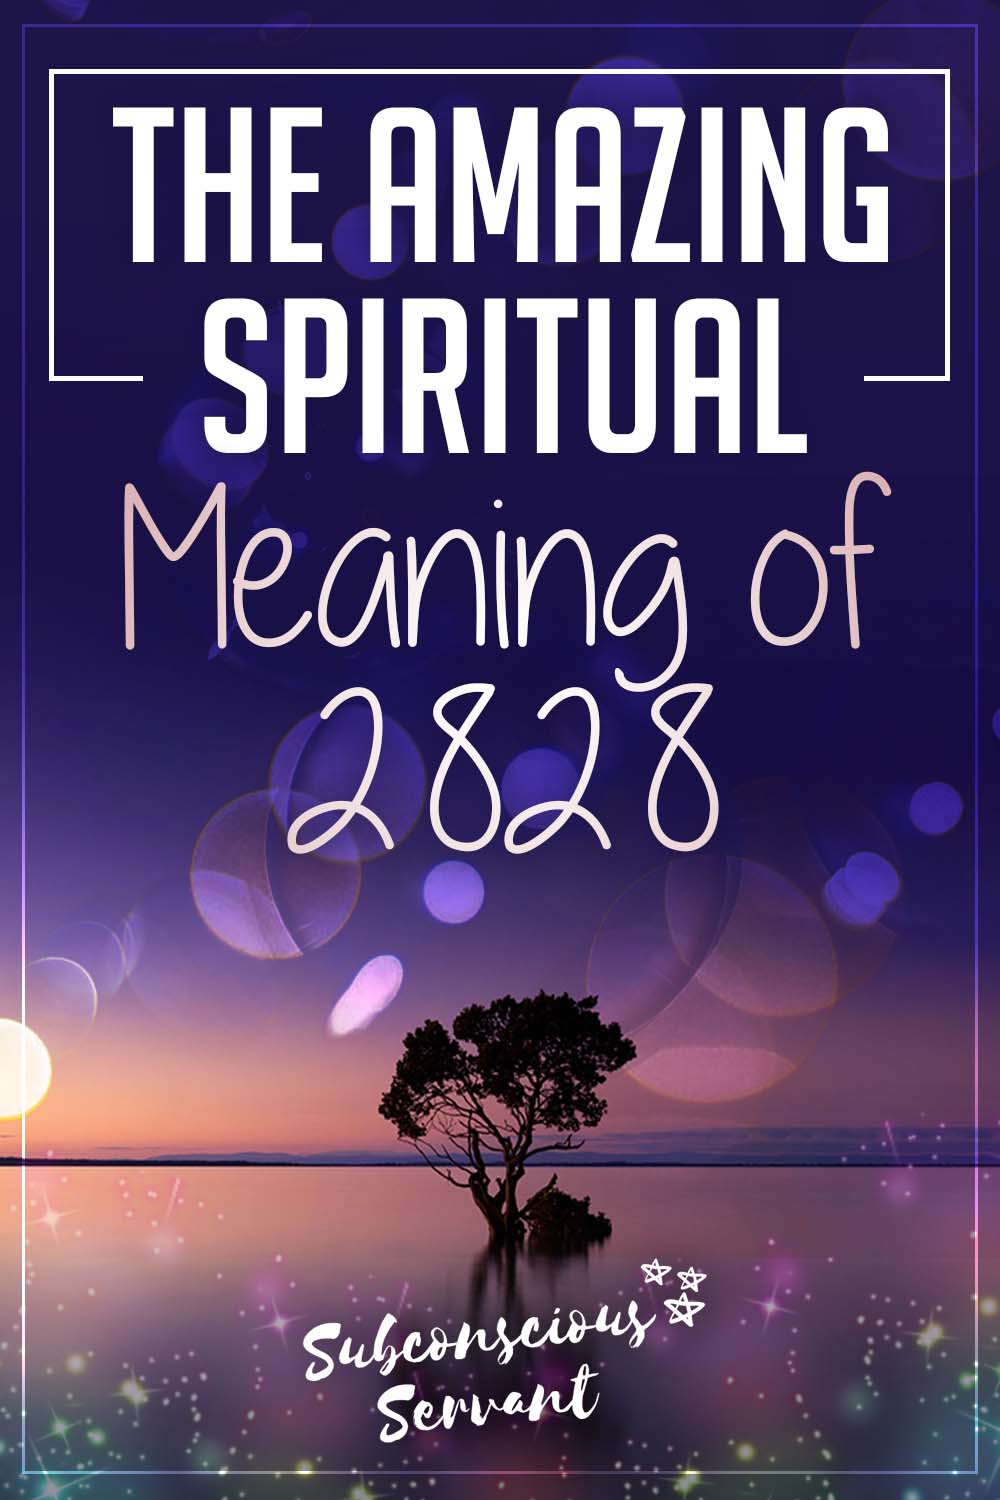 Seeing 2828? The Amazing Spiritual Meaning Of Angel Number 2828